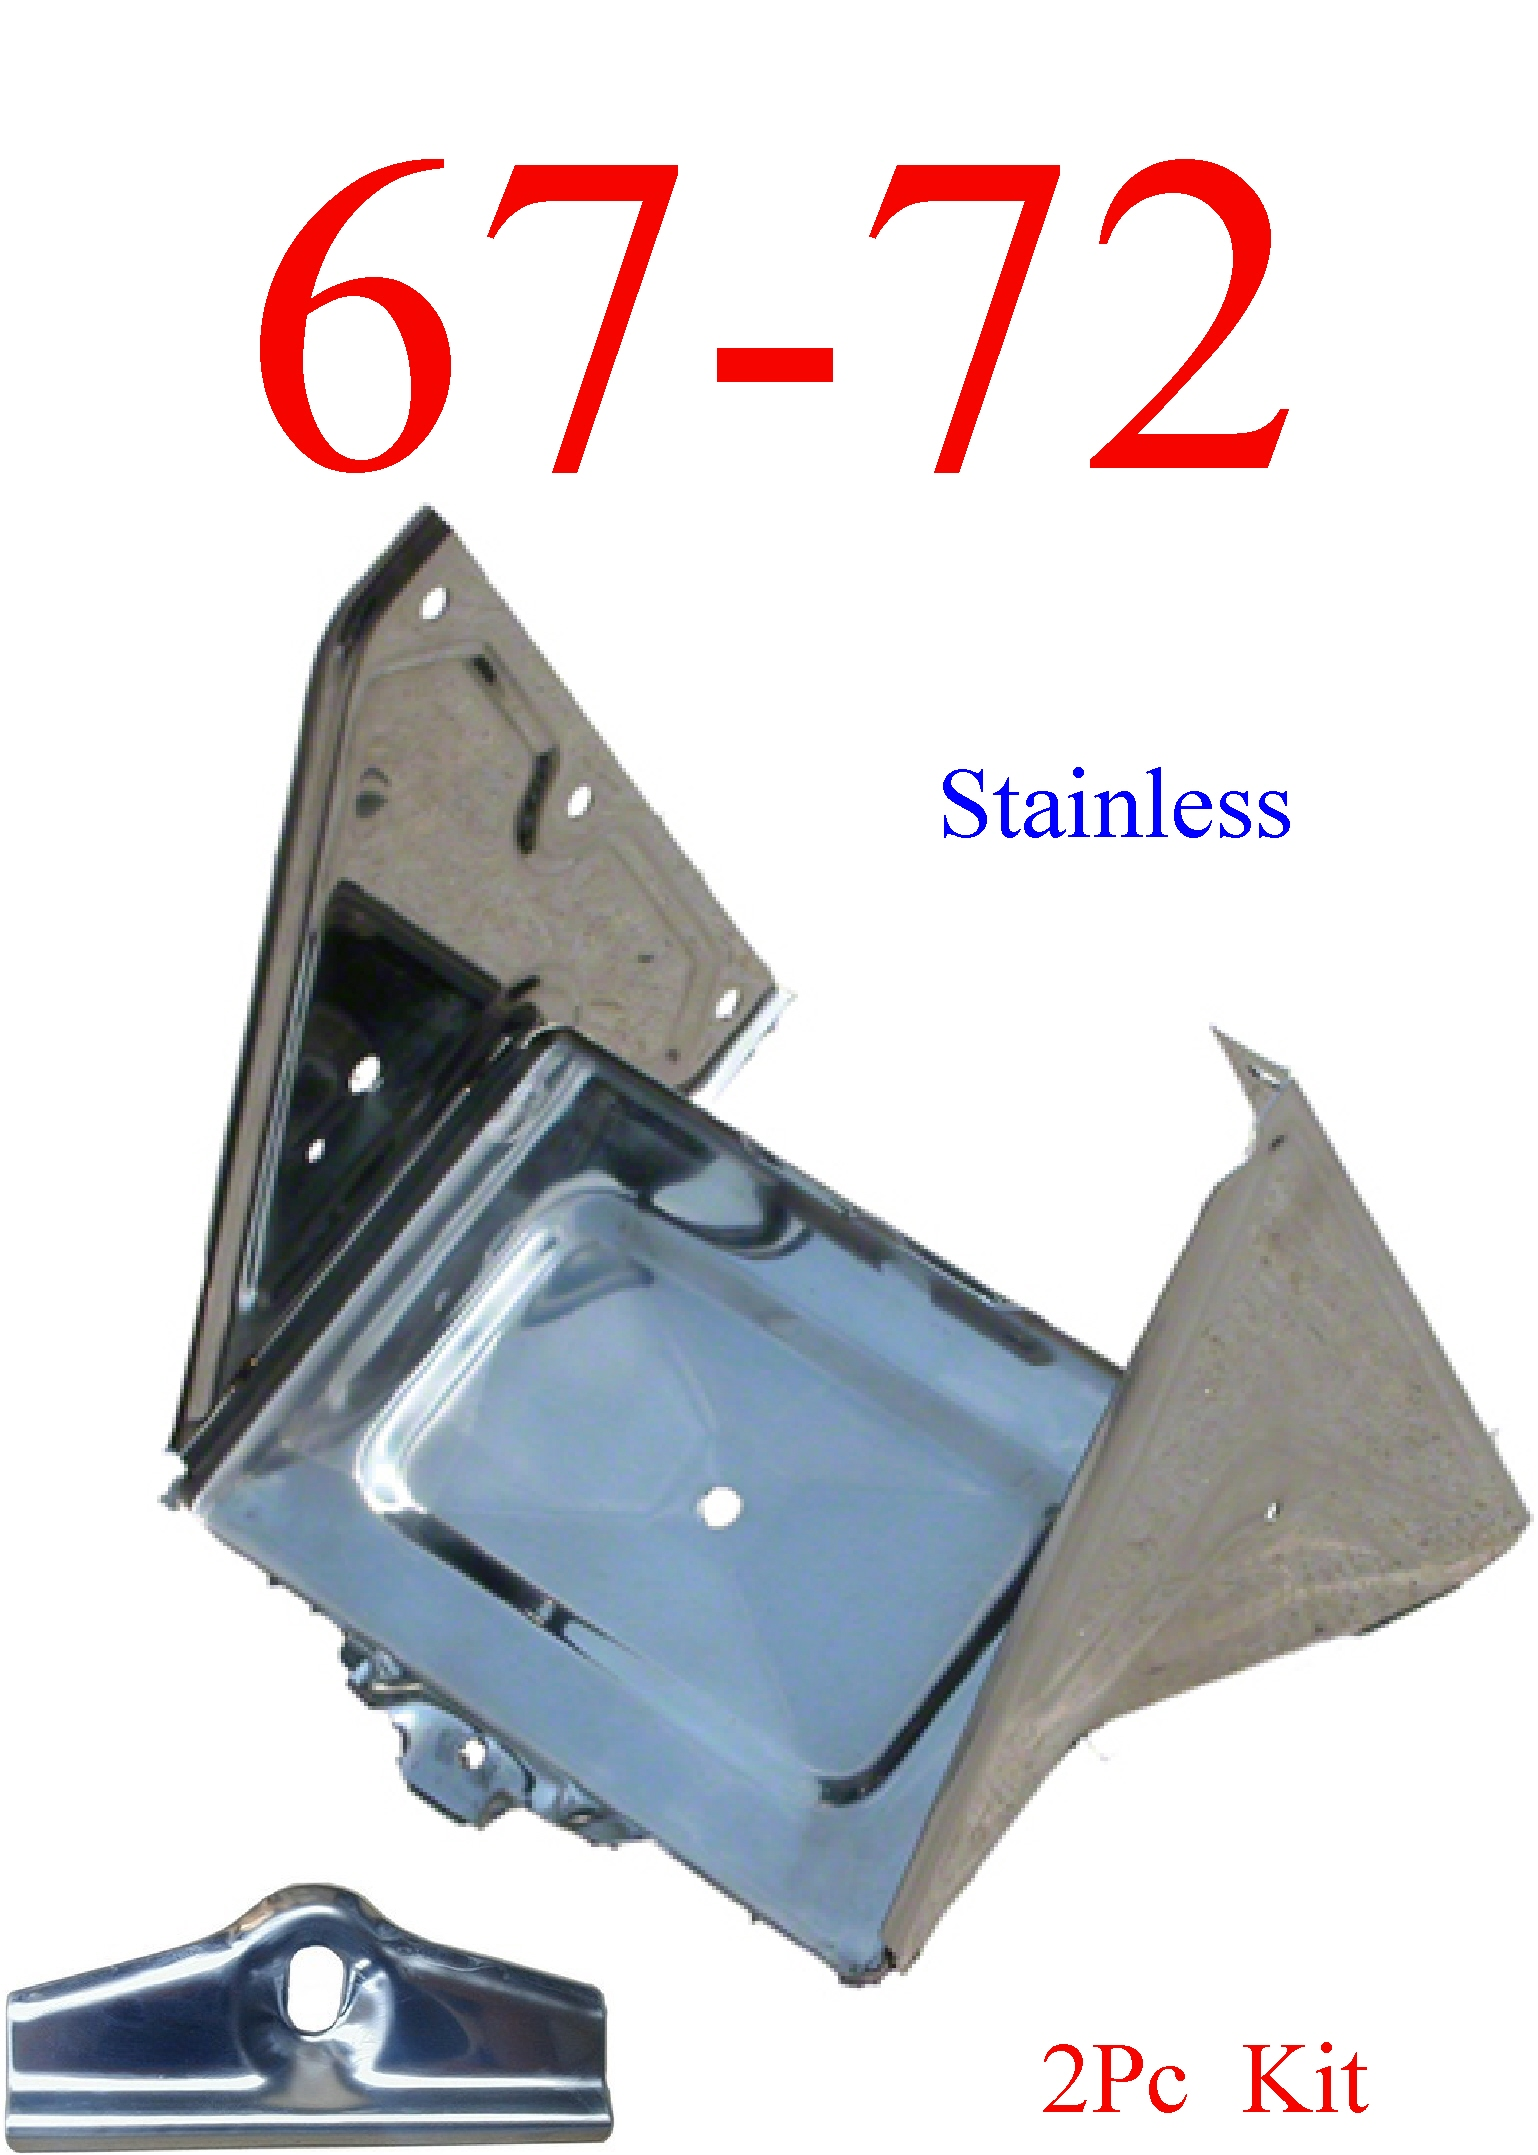 67-72 2Pc Stainless Chevy Battery Tray Assembly & Hold Down